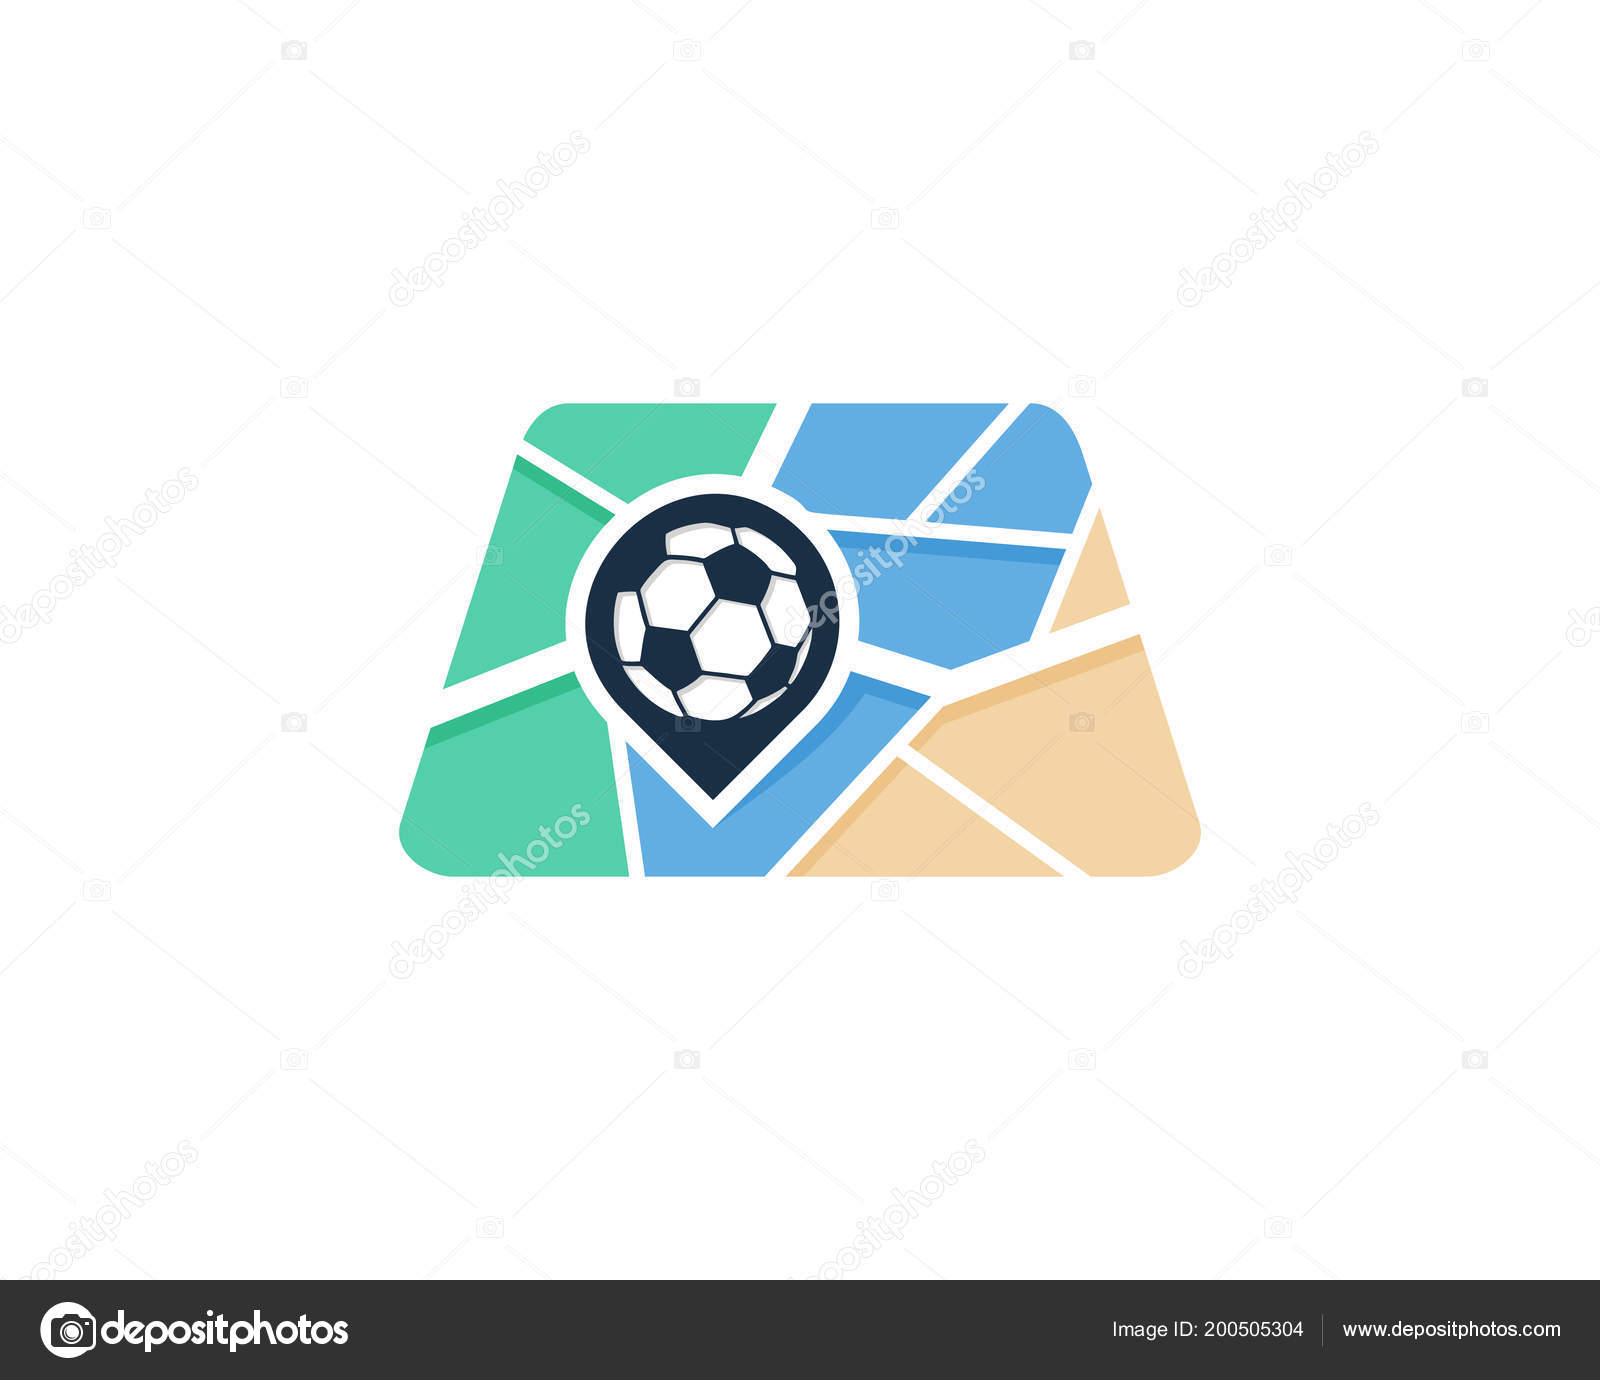 map logo icon design vector illustration stock vector putracetol